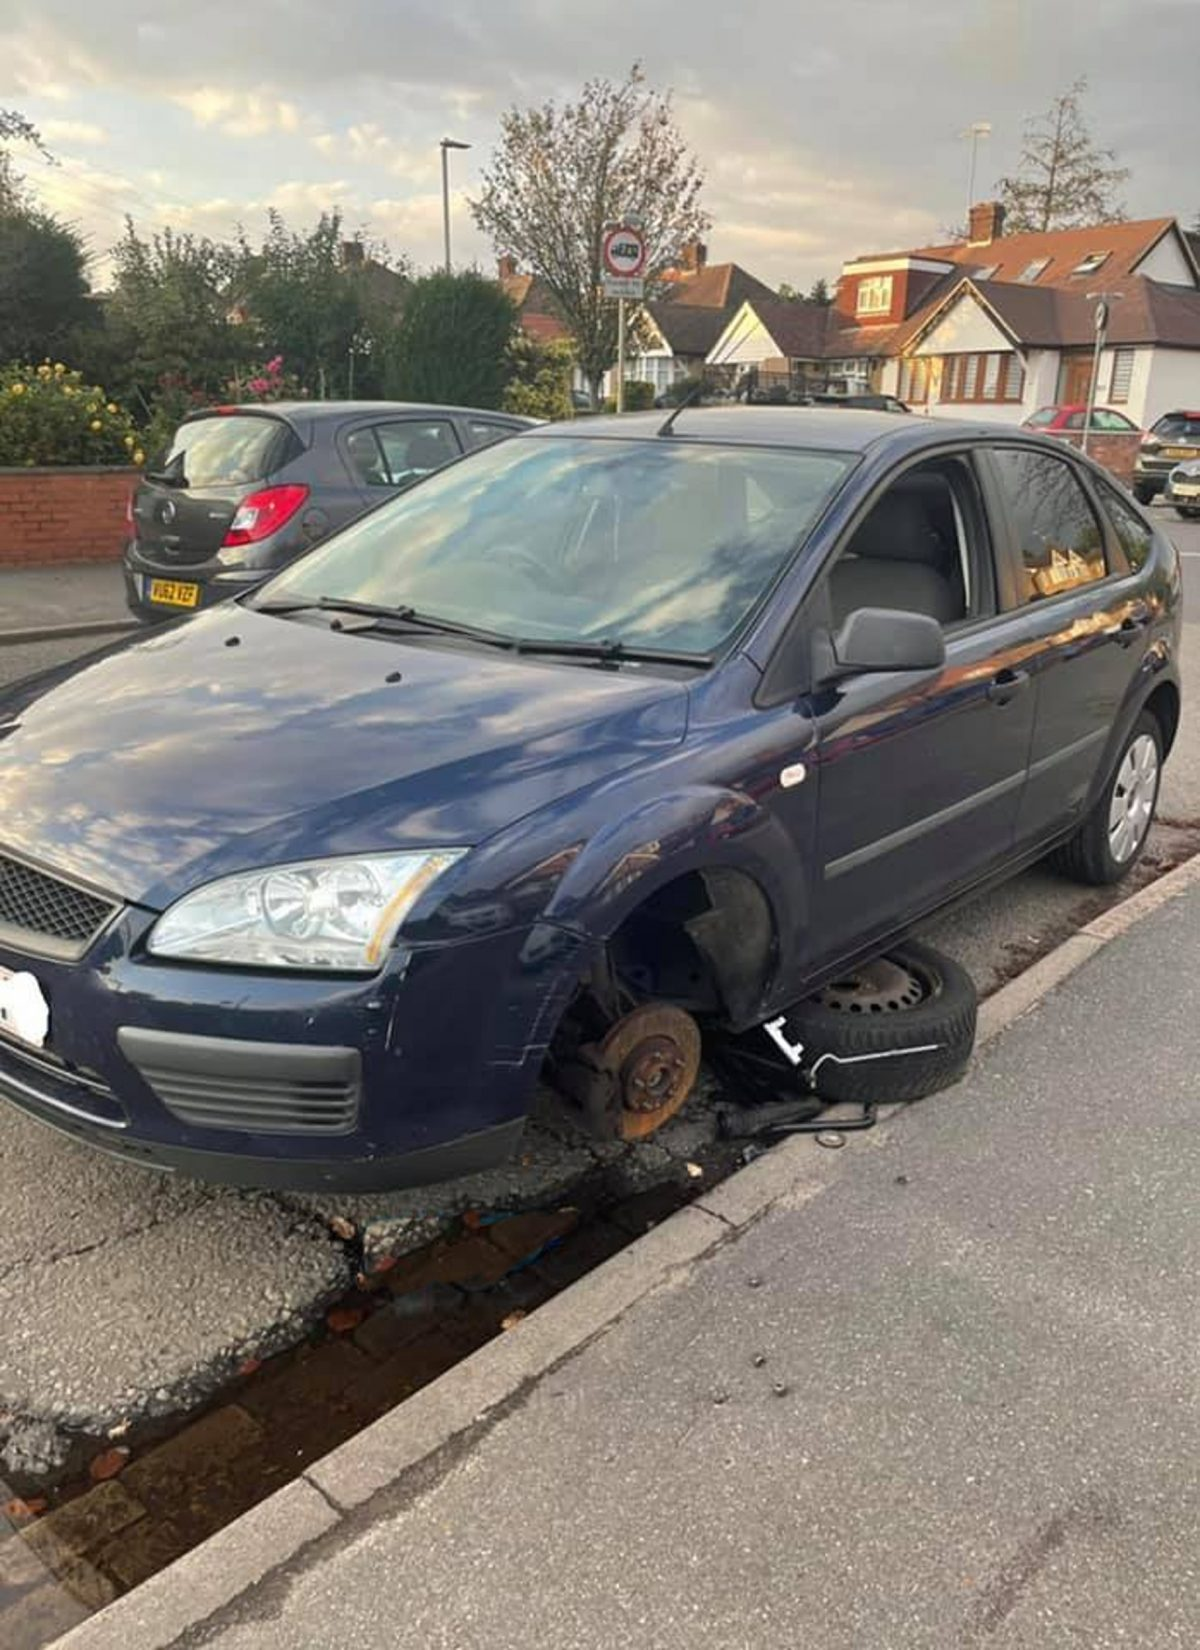 A photo of some of the damage the width restrictions in Watford are doing to cars.